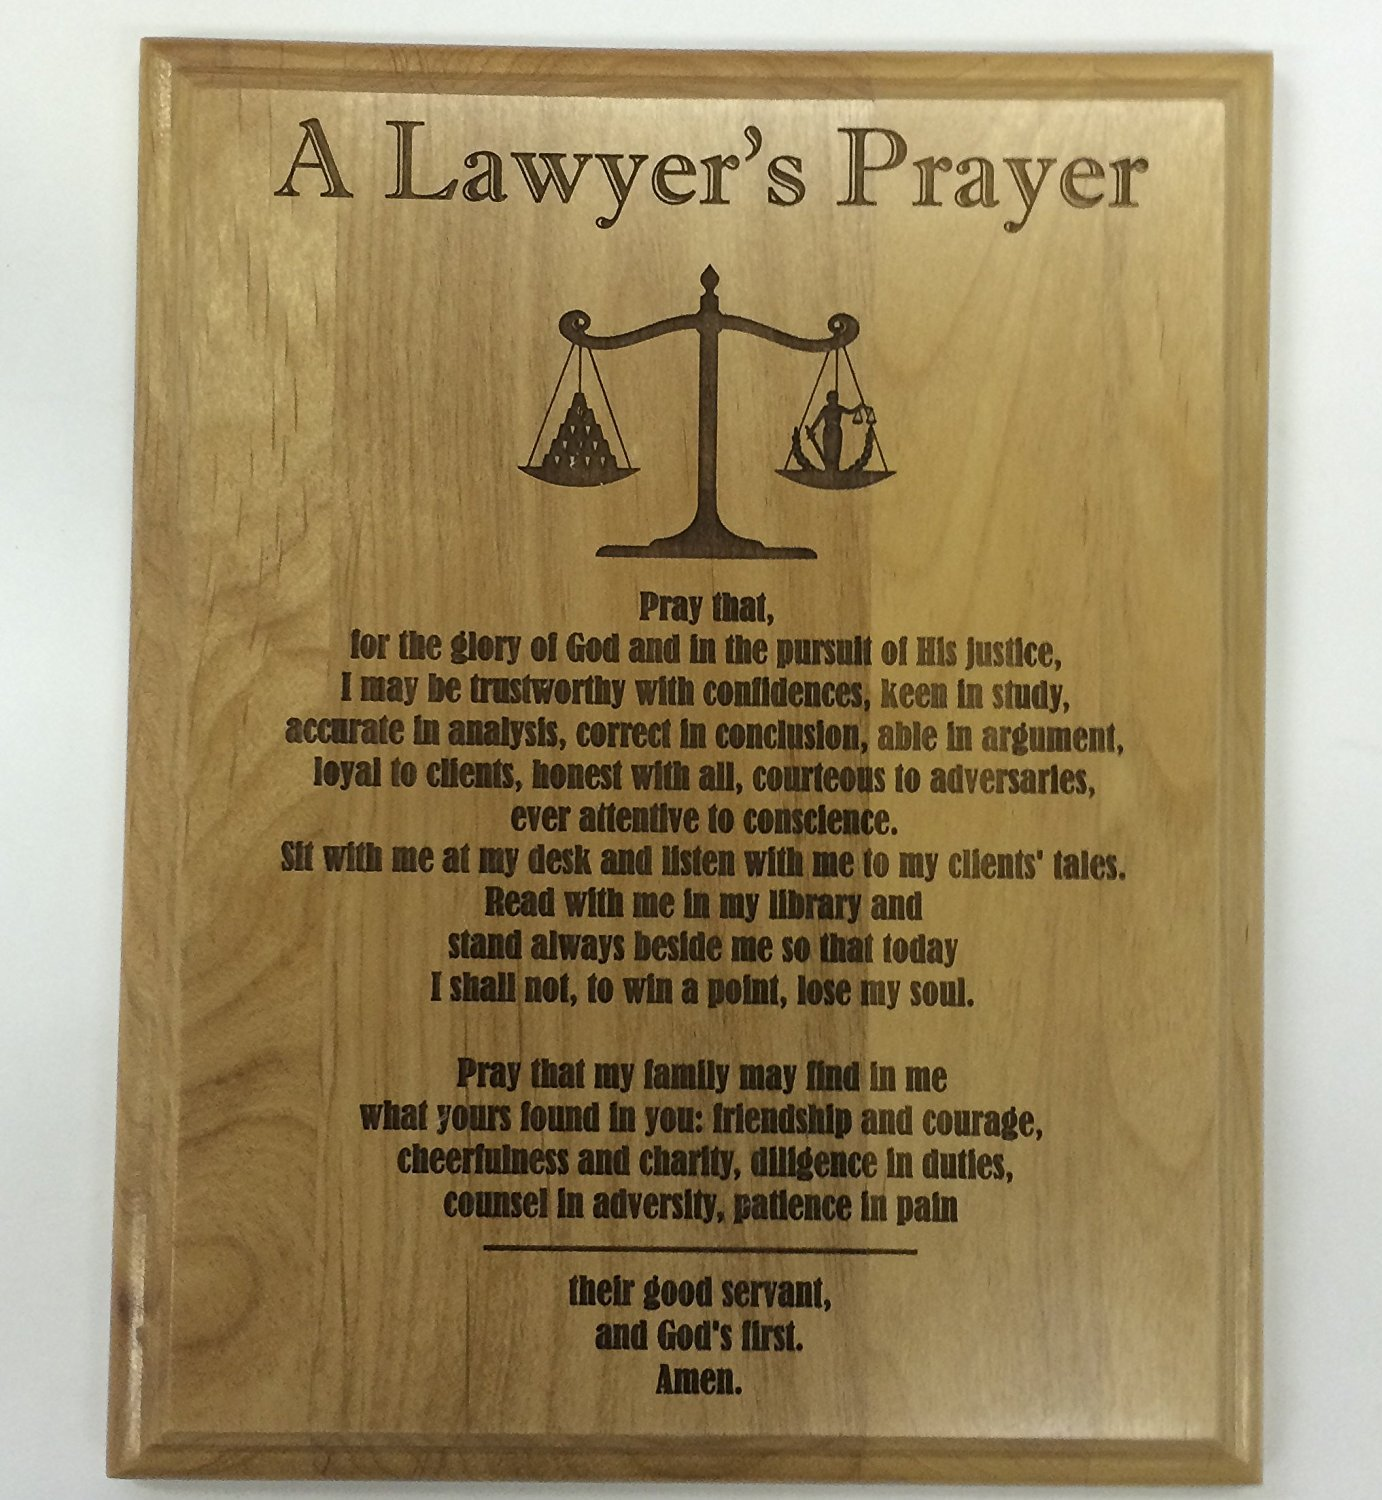 A Lawyer's Prayer Engraved on 8 By 10 Red Alder with Balance image, with Lady Justice